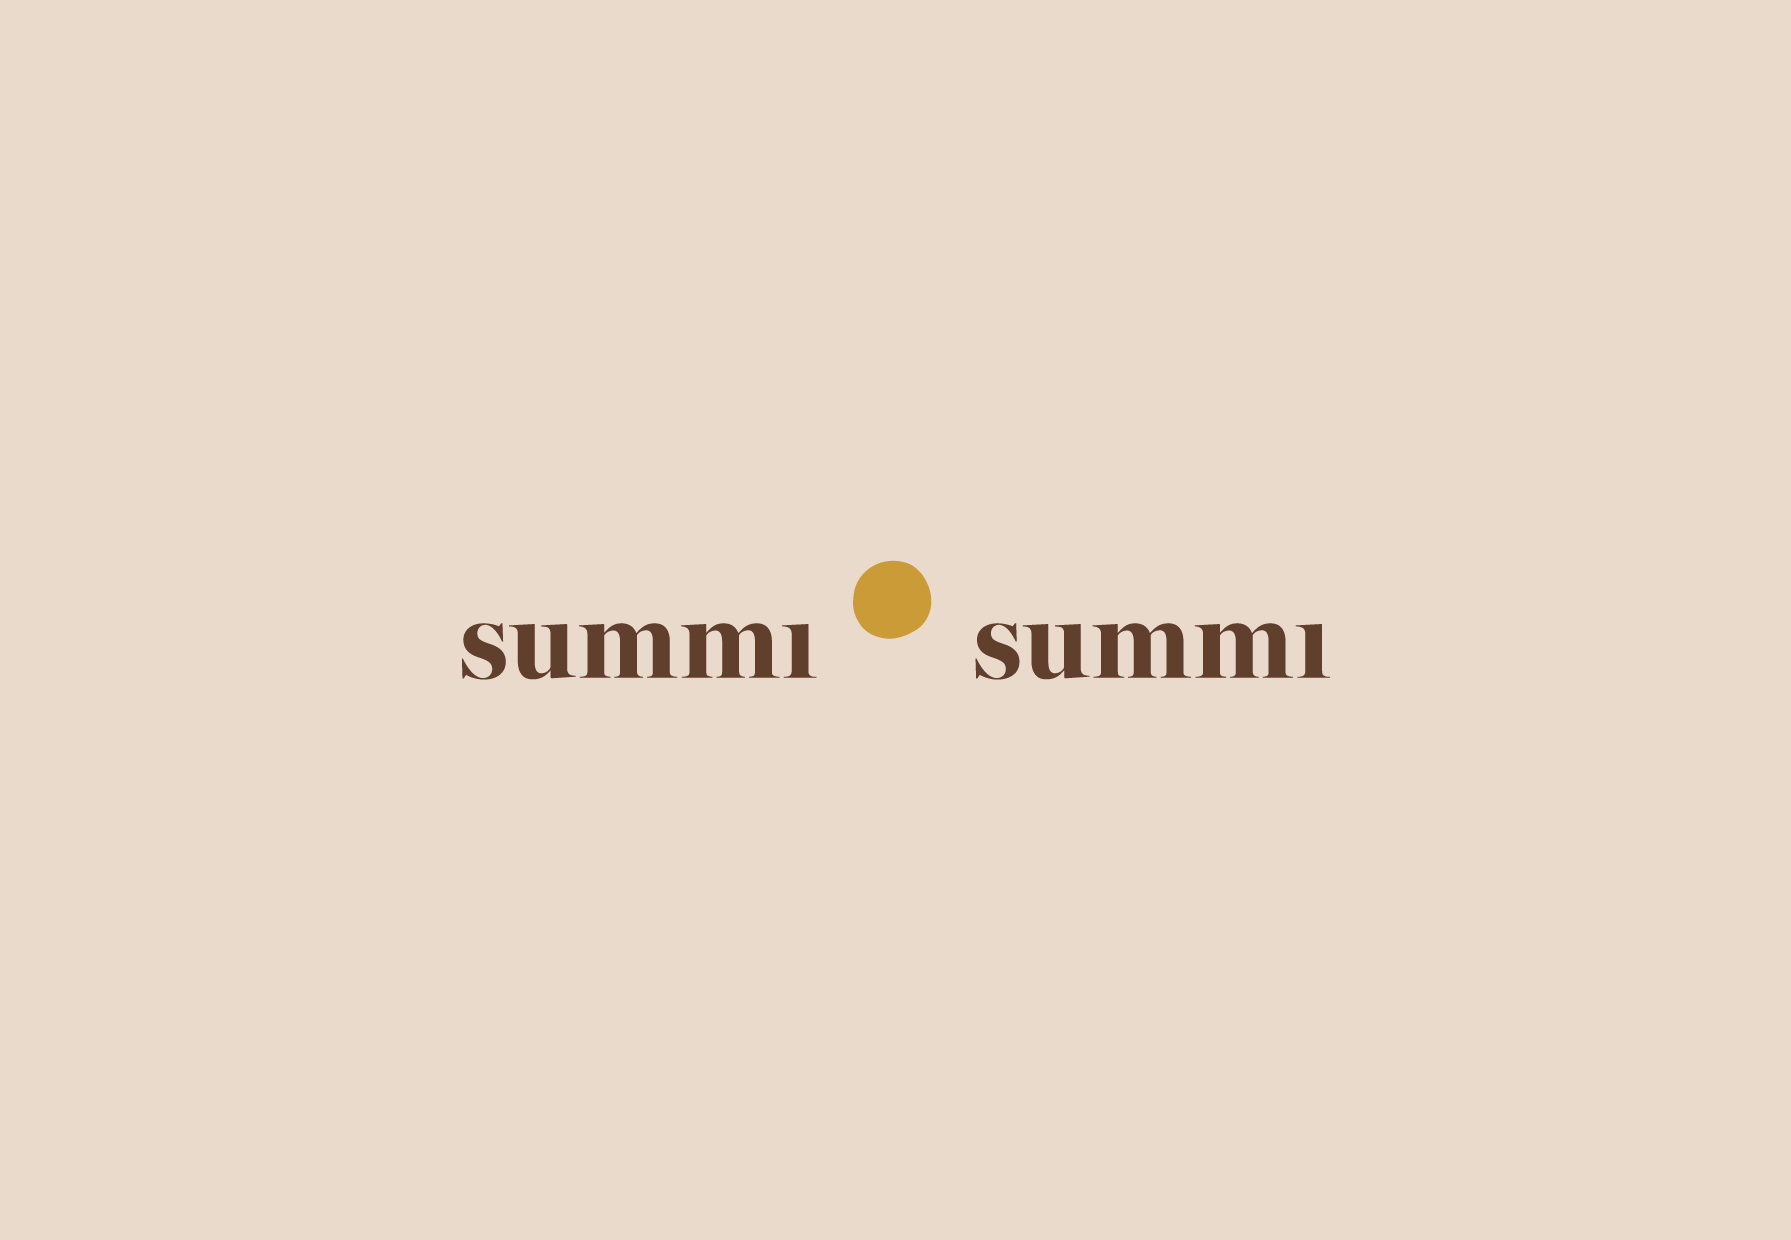 Summi Summi Logo Design